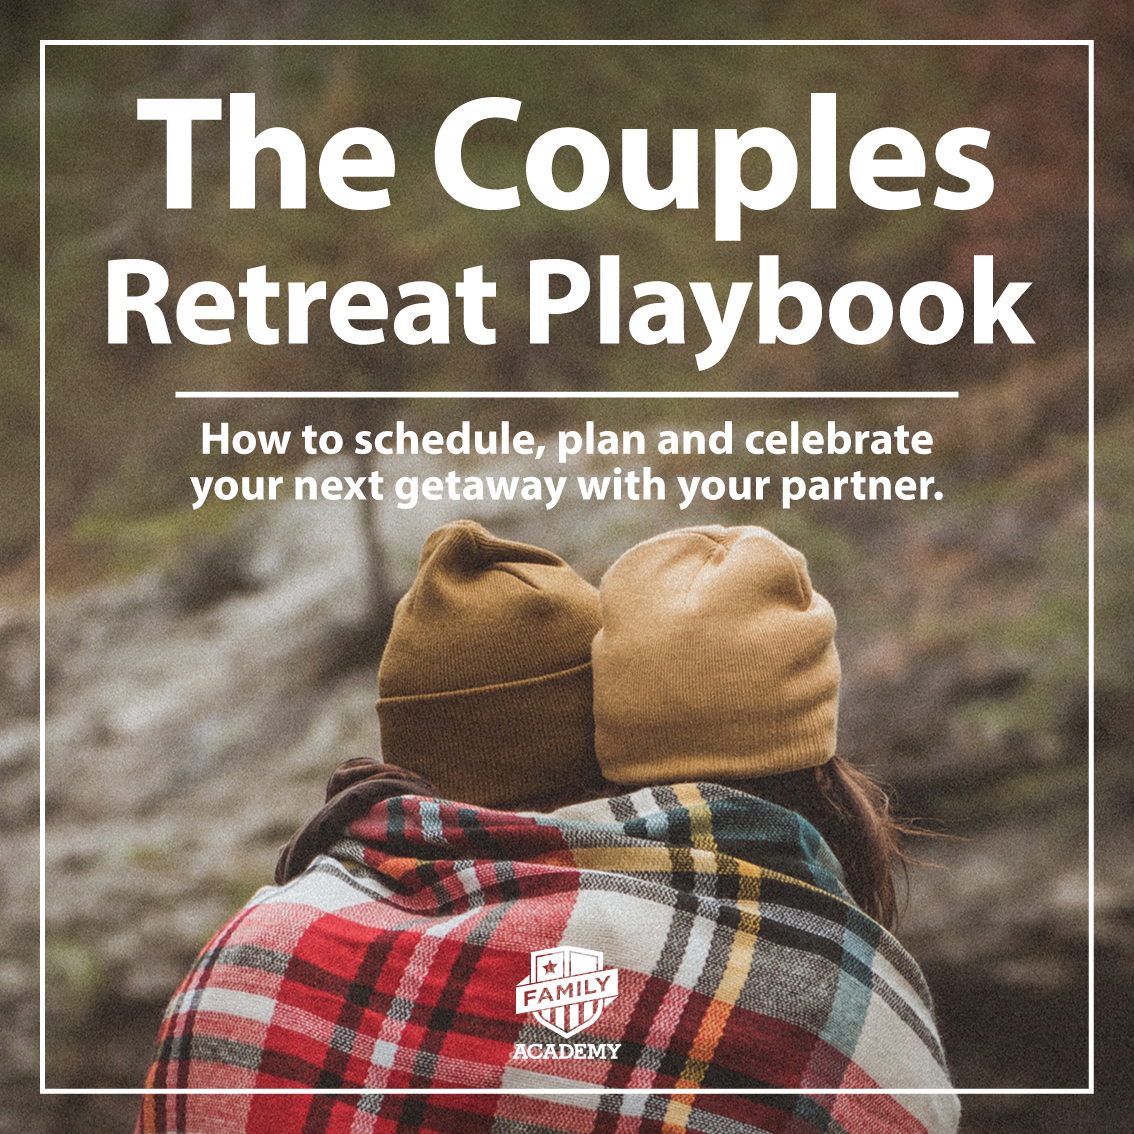 The-Couples-Retreat-Playbook-COVER-v05.jpg